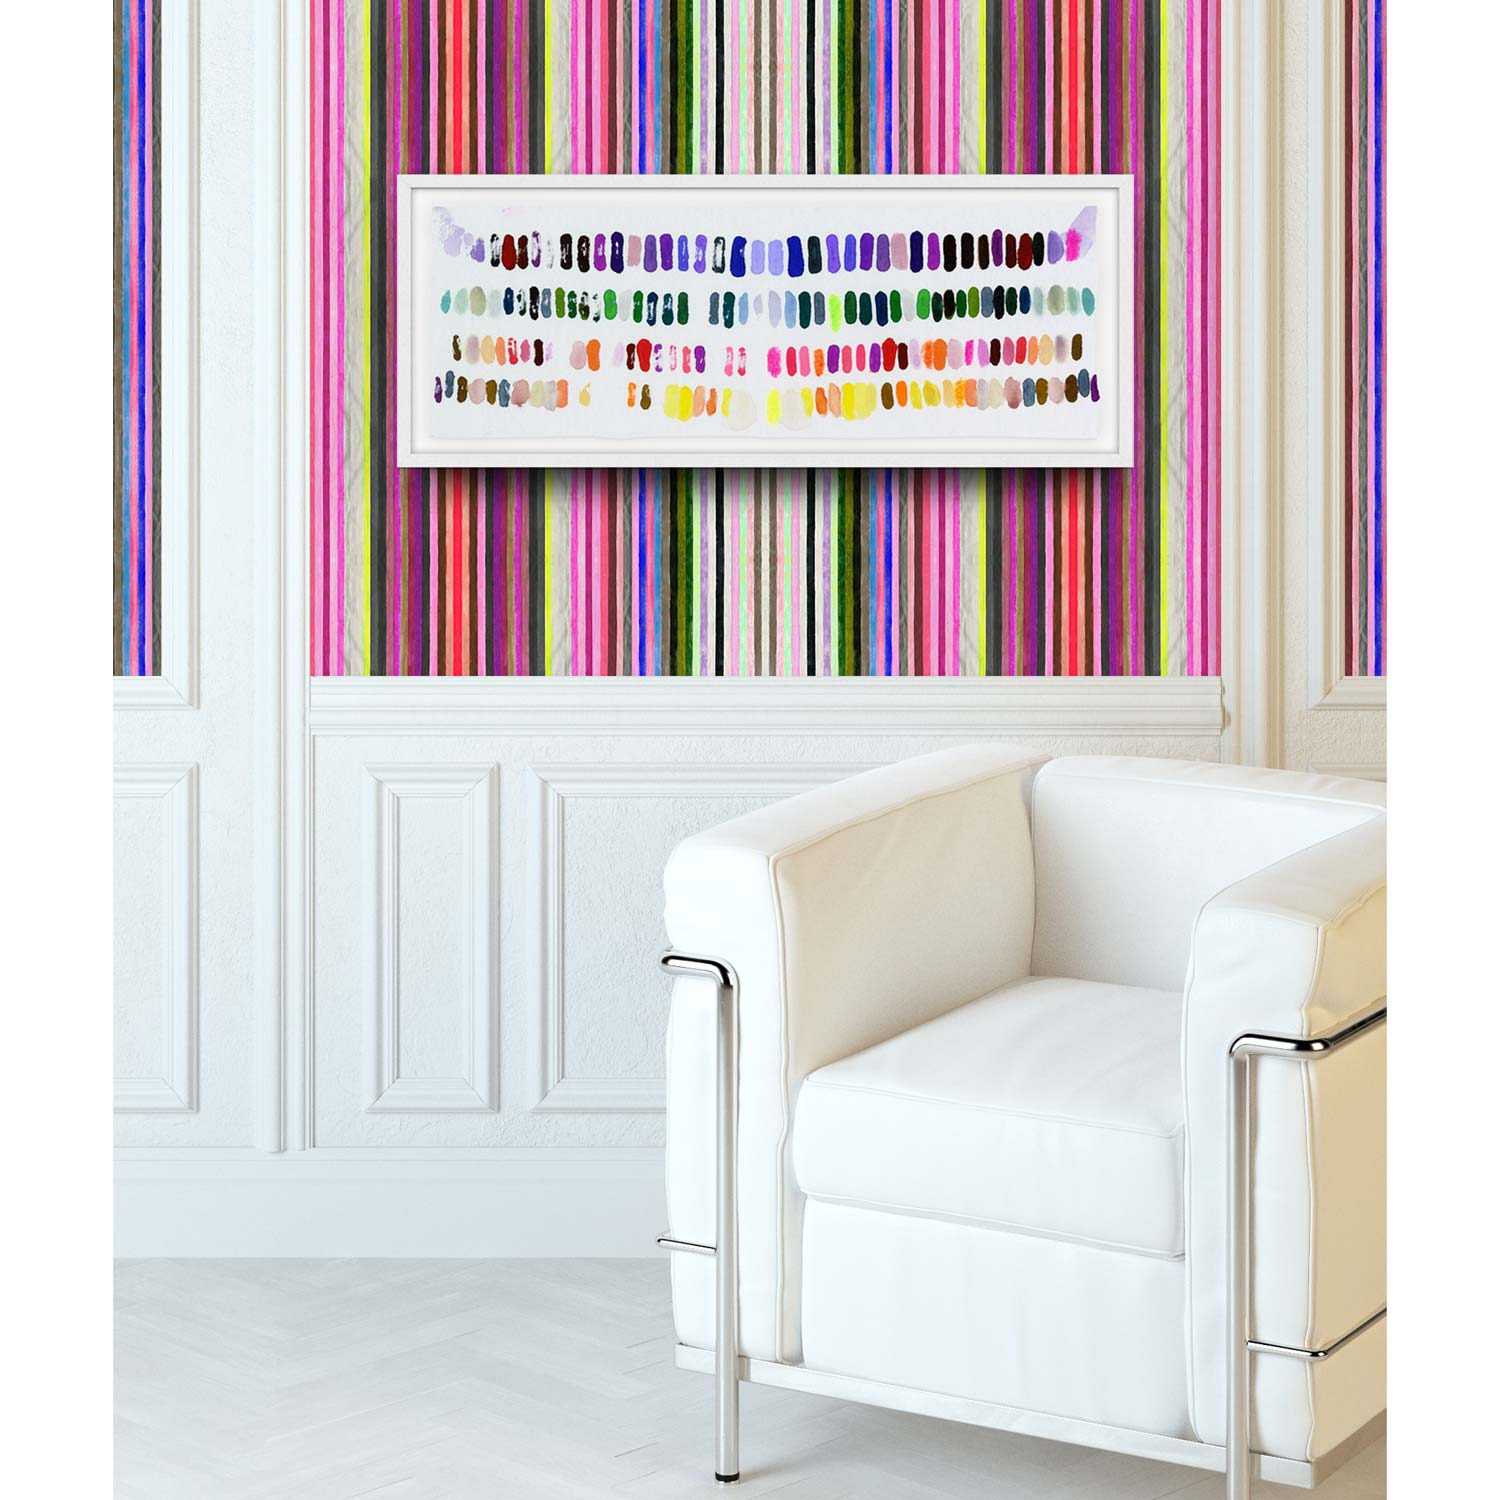 BOLD COLOR + SIMPLE PATTERNS - CHROMATIC HARMONY 23 WALLPAPERLEAVE A BIG MARK PRINT